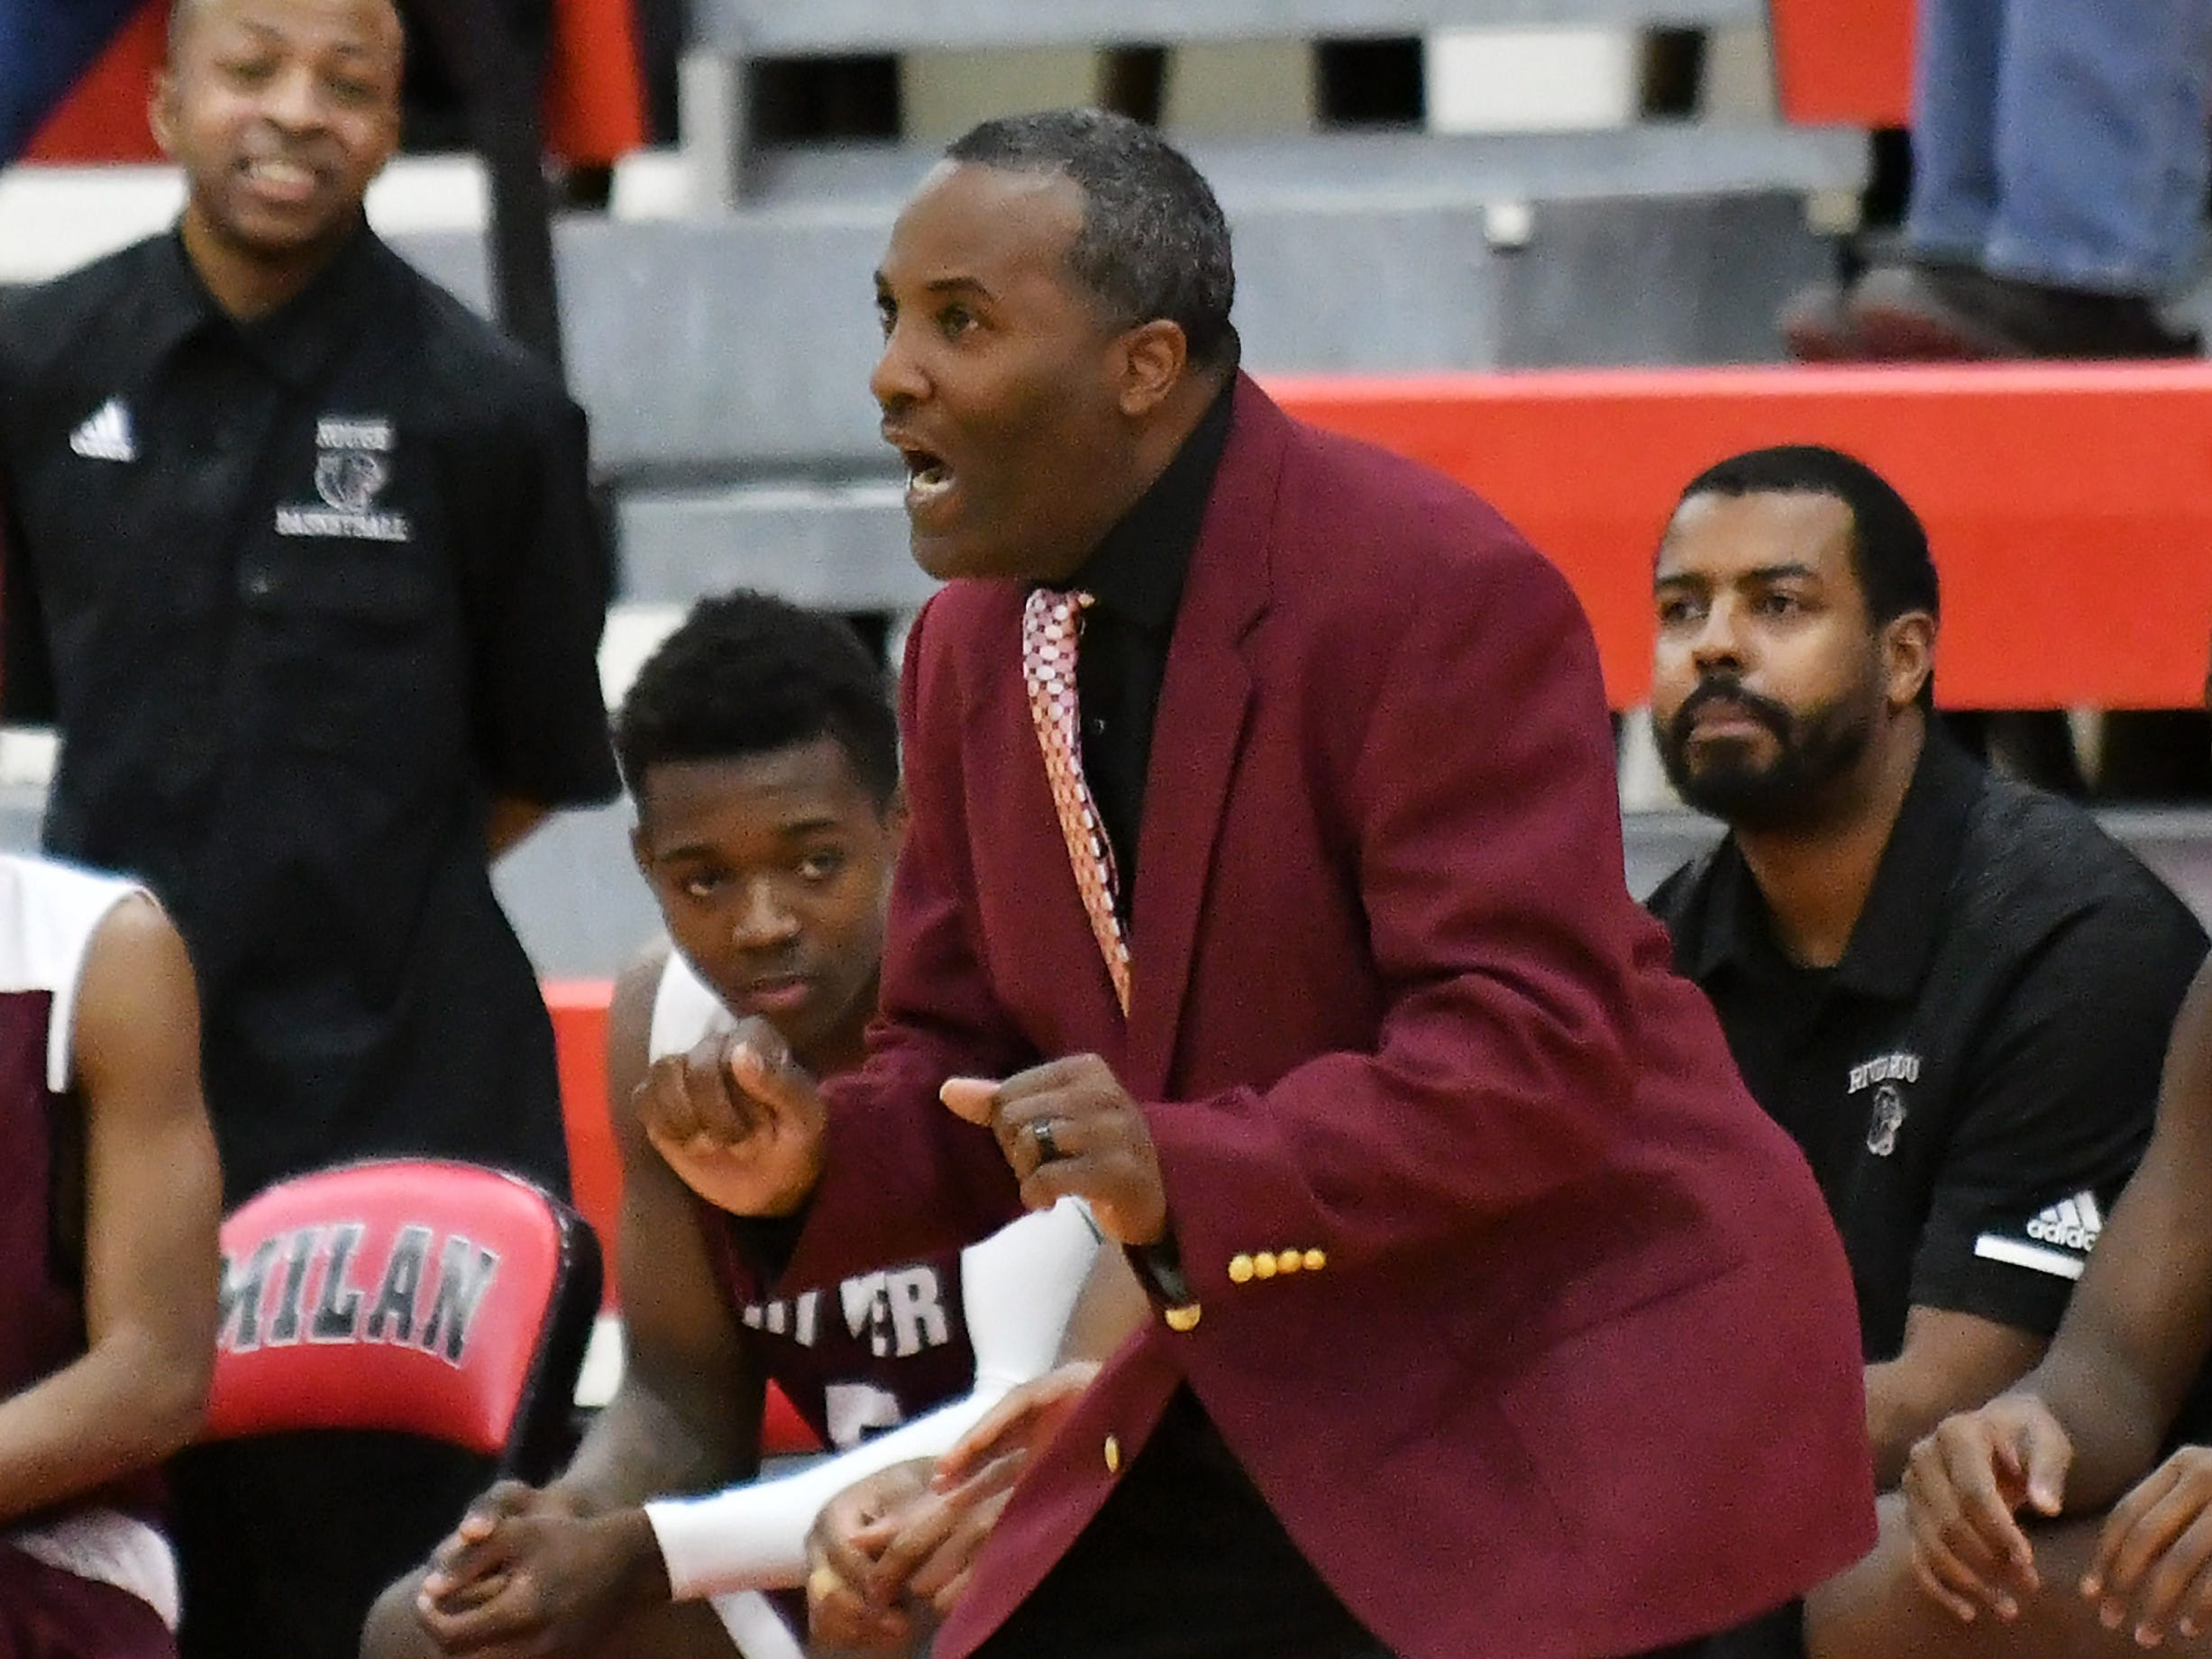 River Rouge head coach LaMonte Stone in the first half.